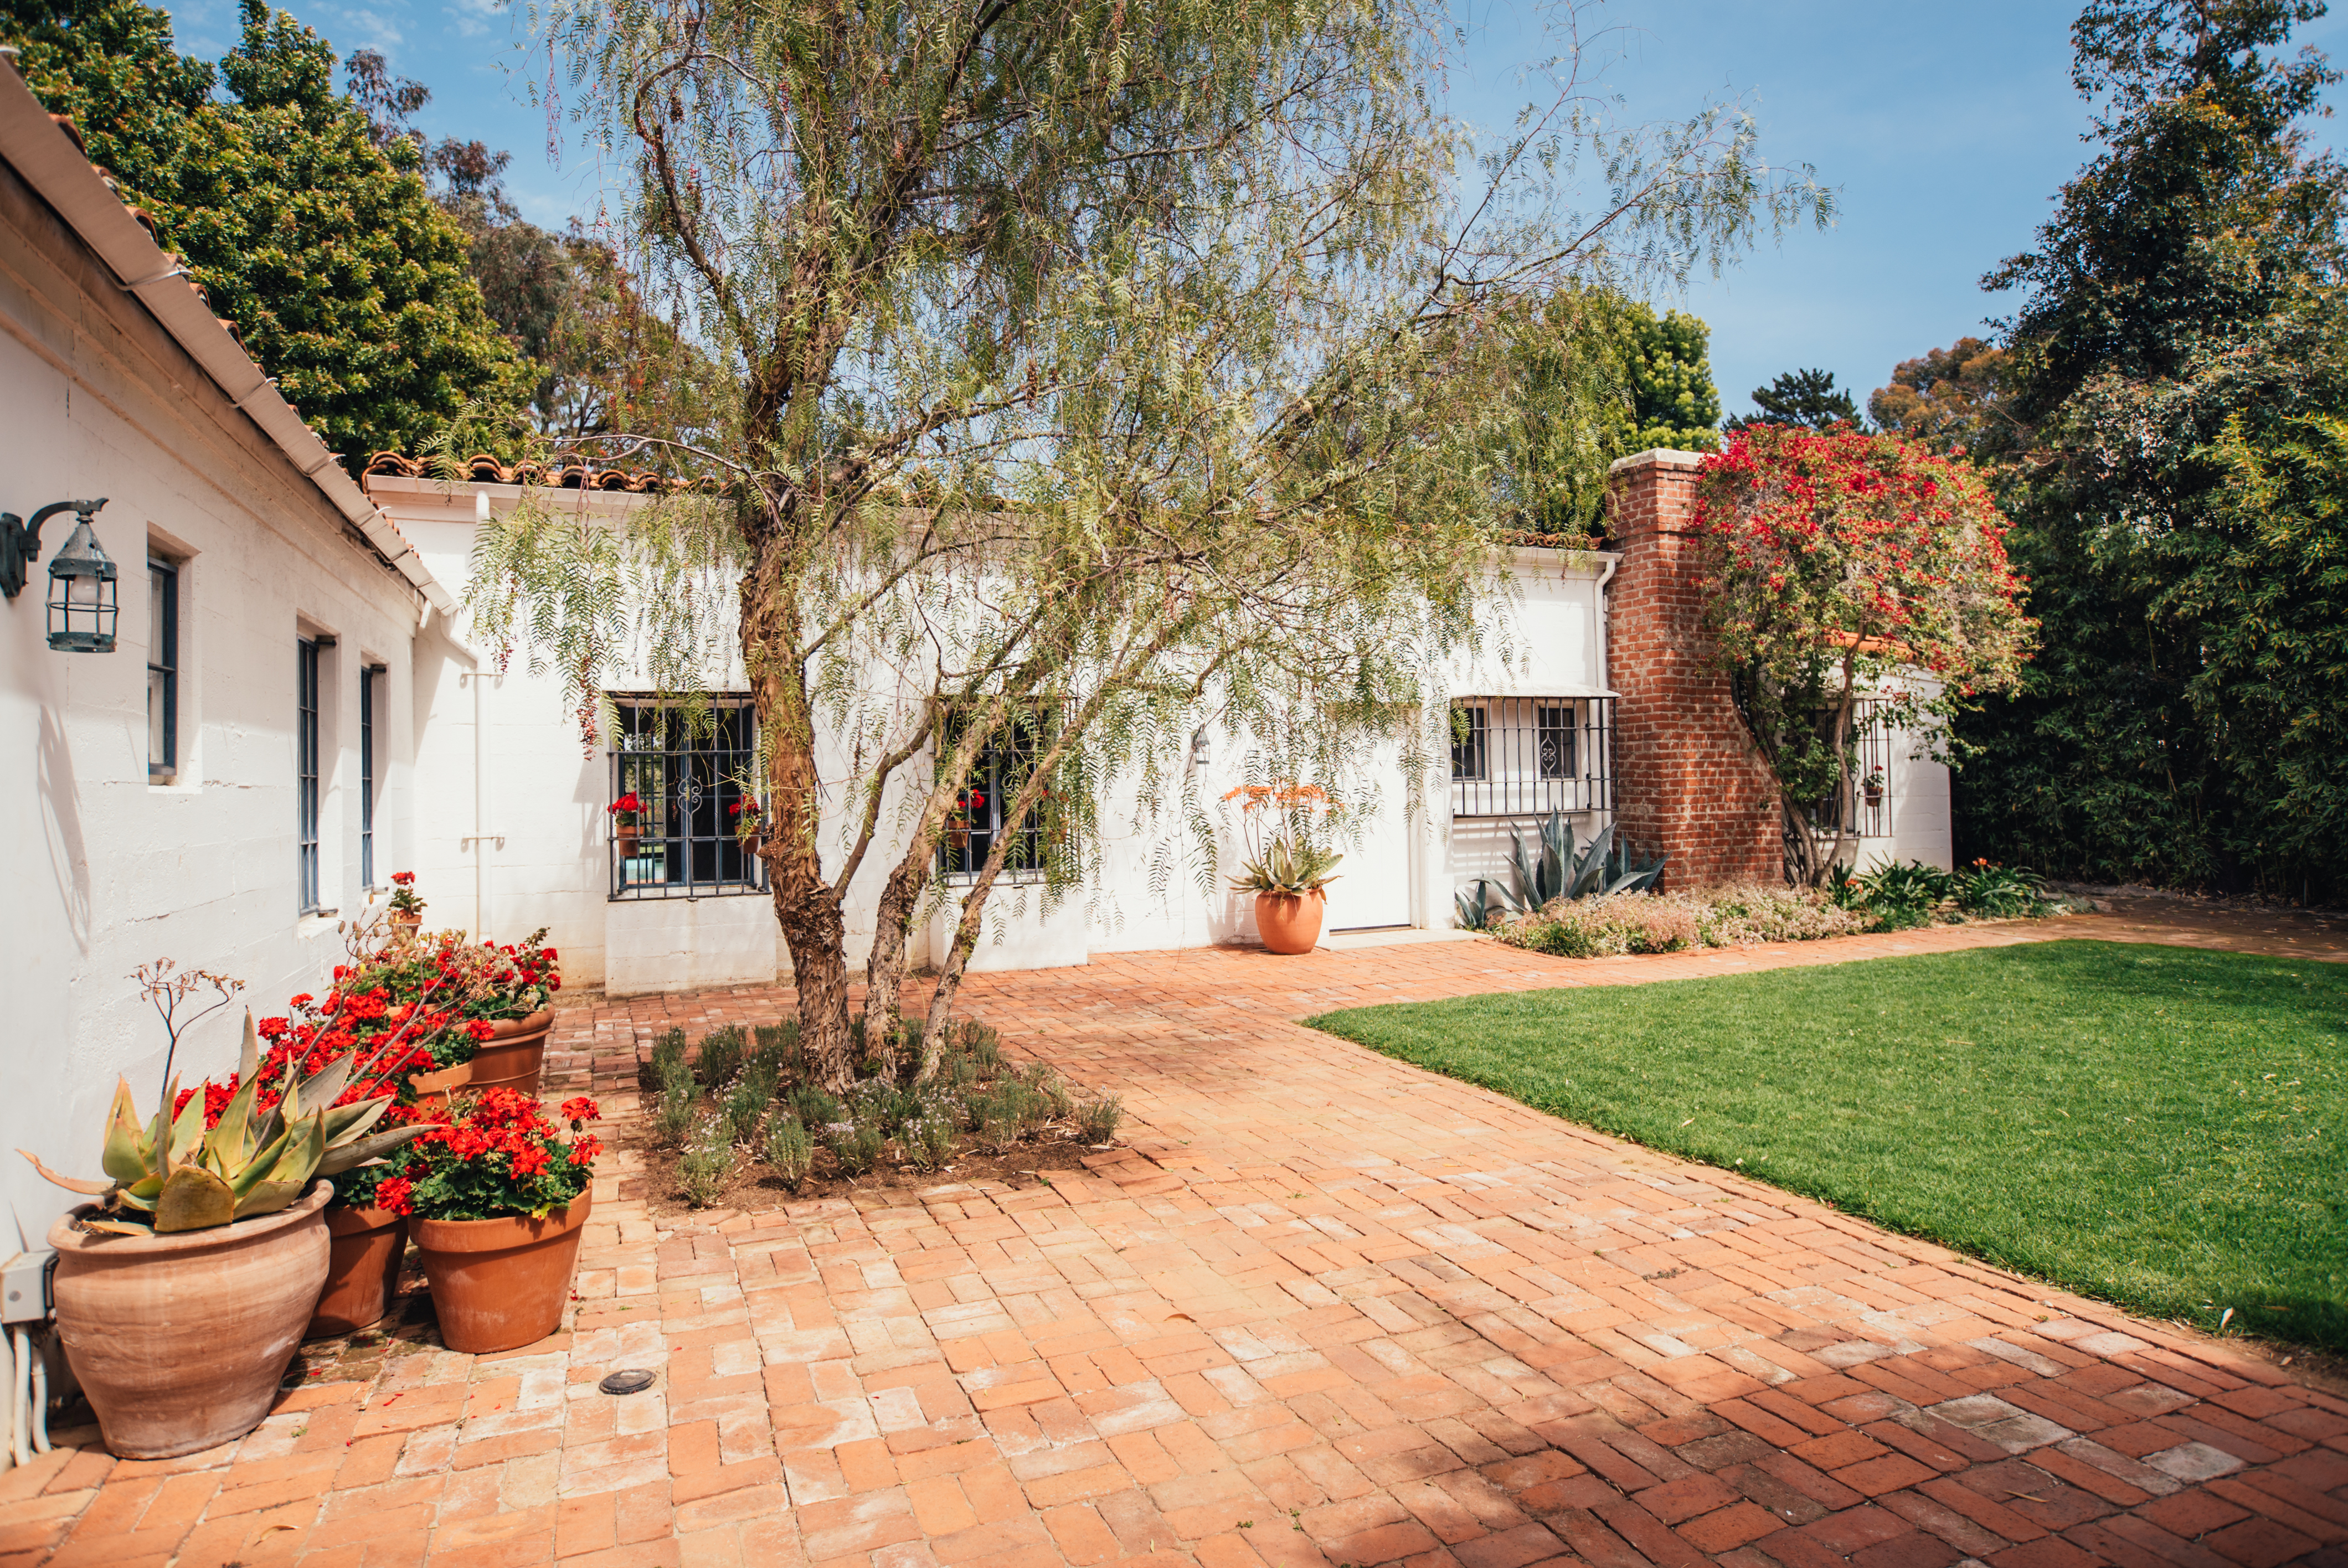 Marilyn Monroe House Address marilyn monroe's brentwood house is for sale for $6.9m - curbed la